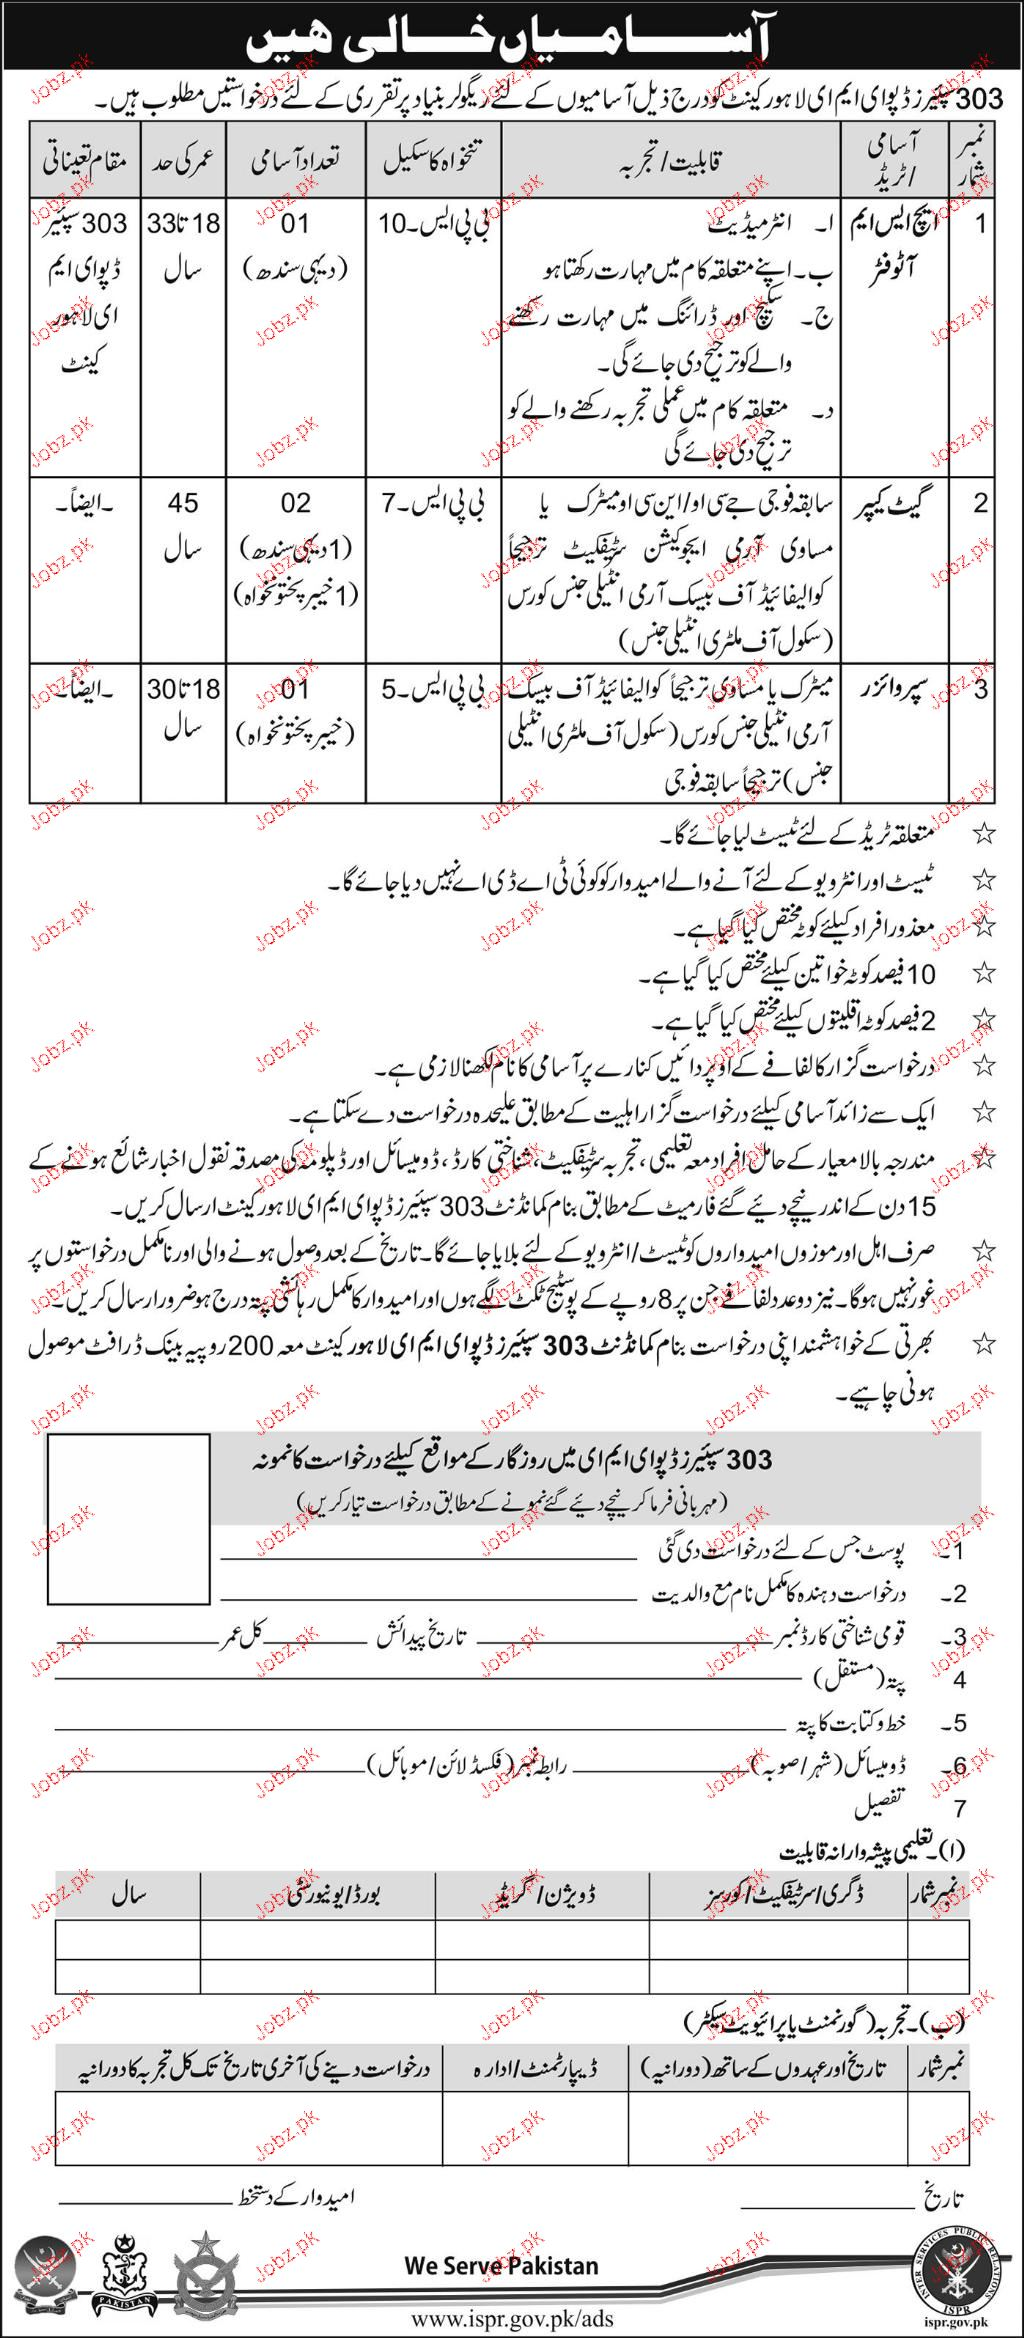 303 Spares Depot EME Lahore Cant Jobs